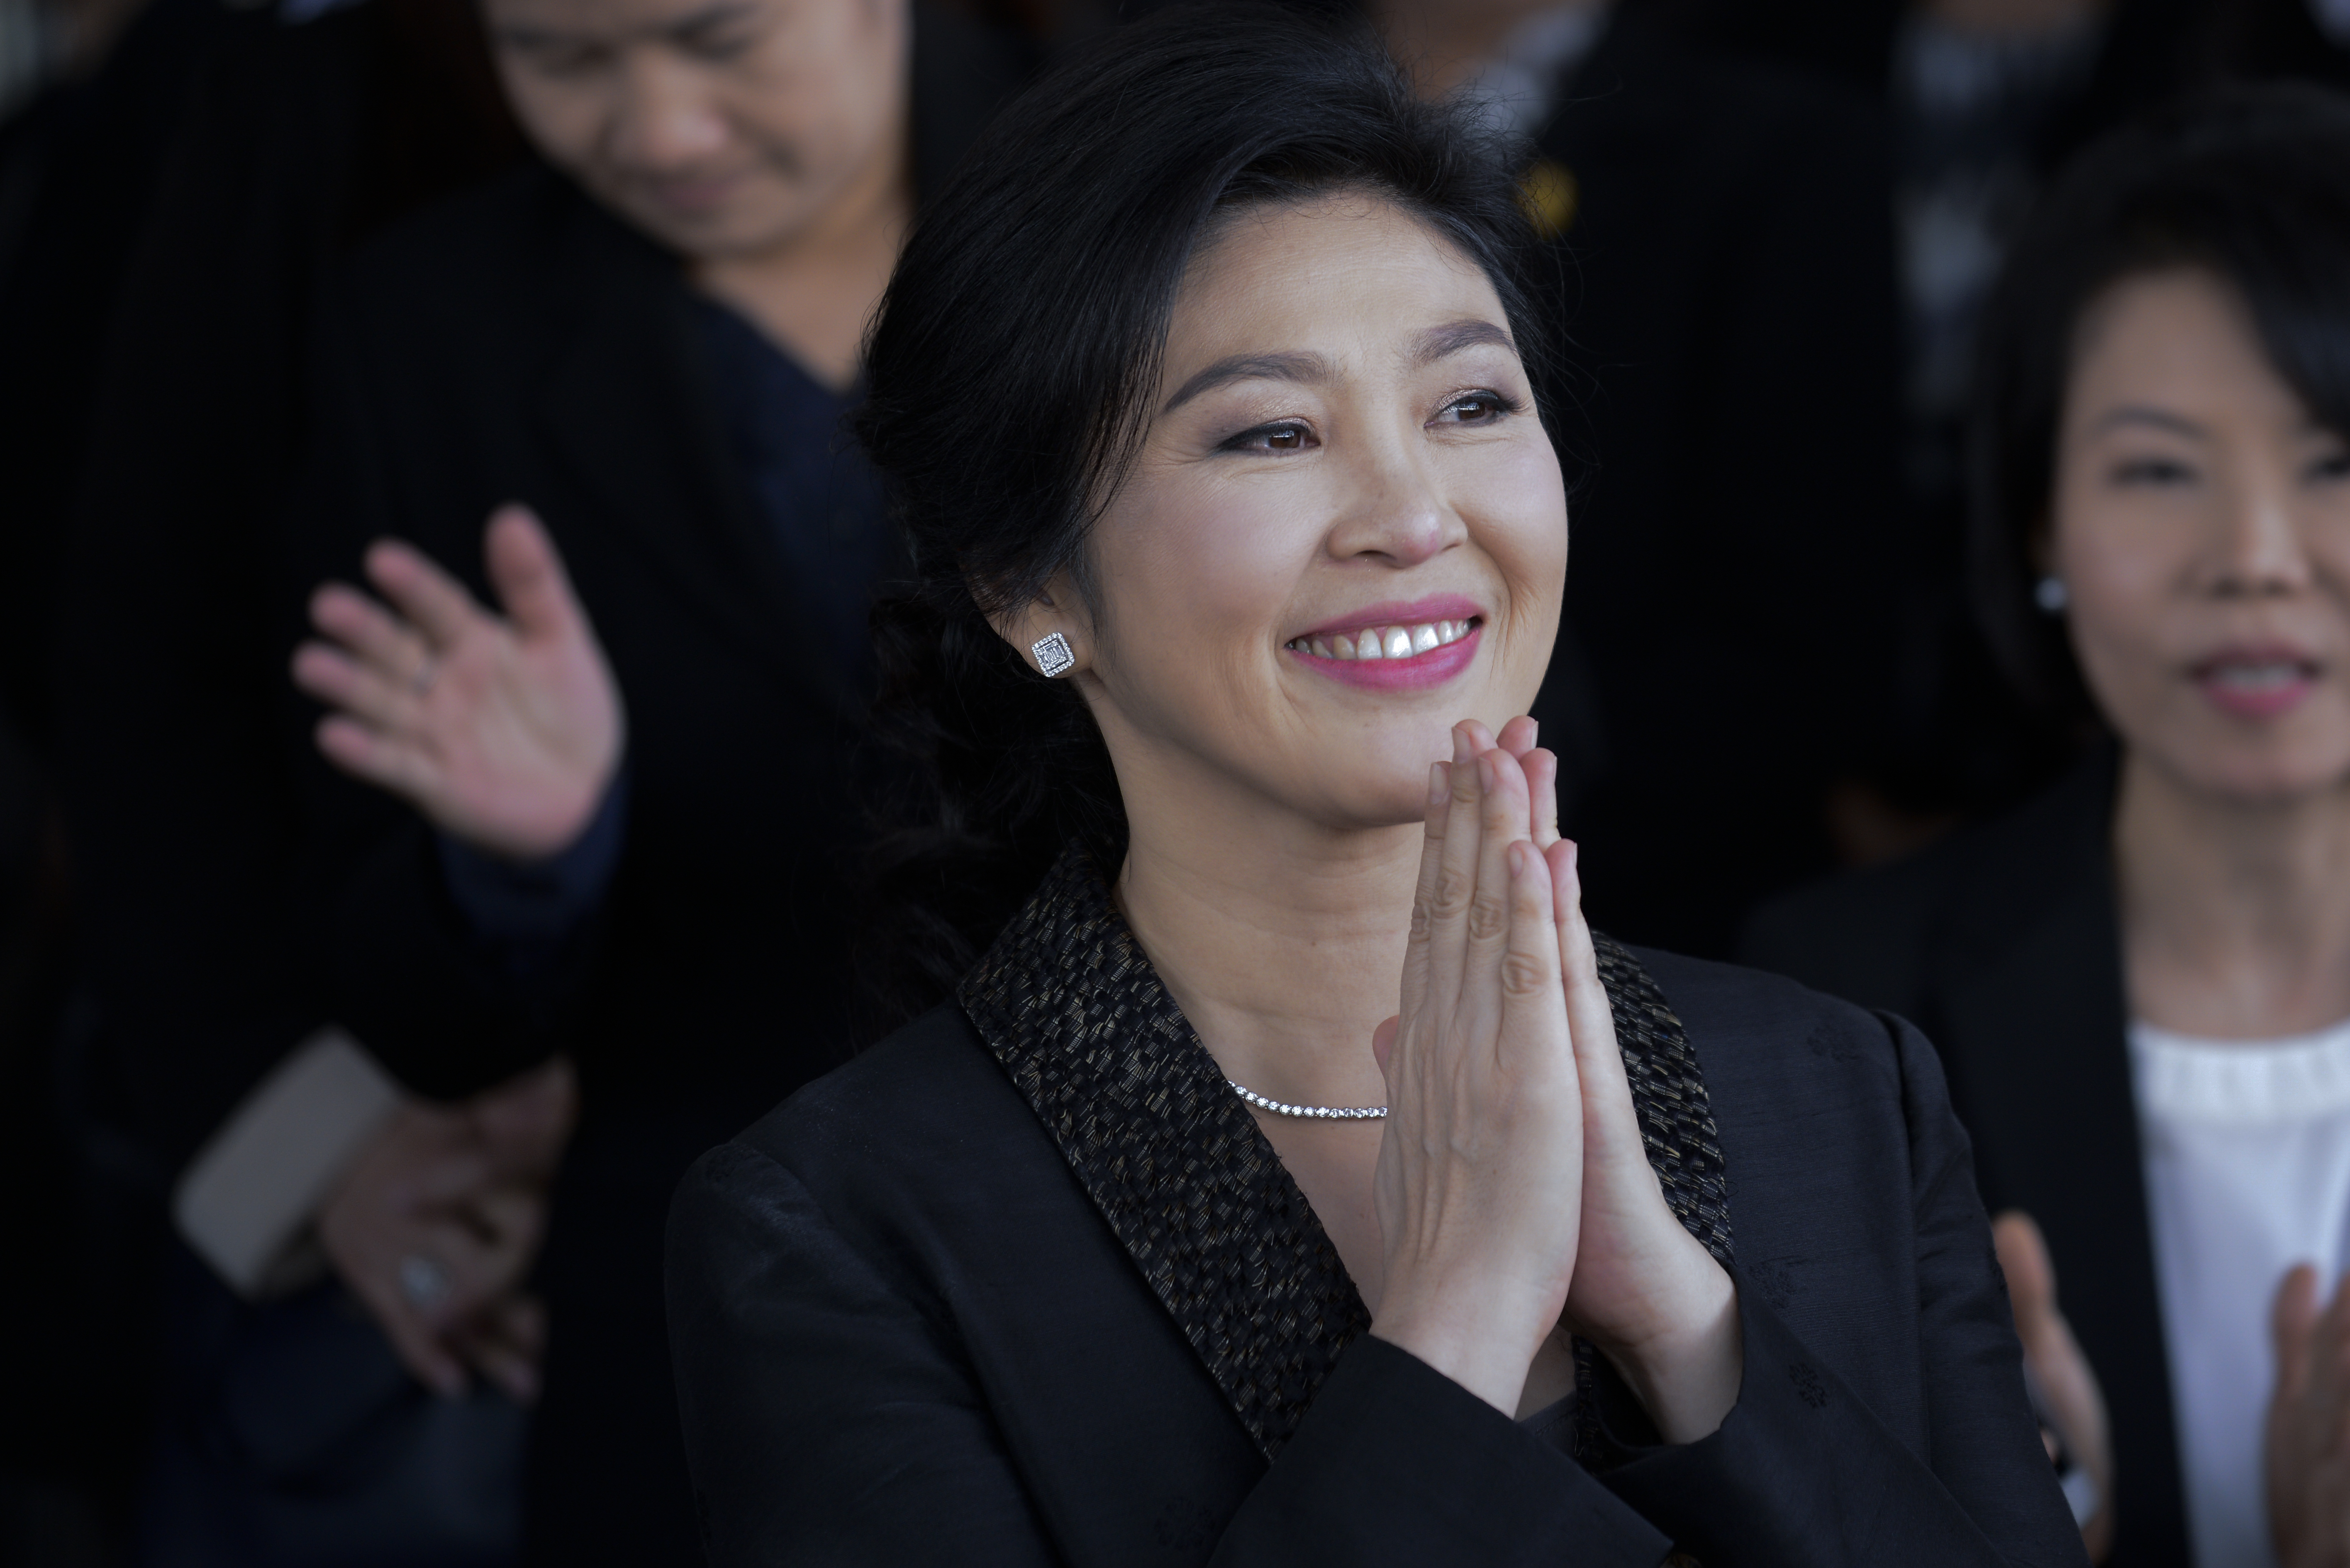 Former Thailand Prime Minister Yingluck Shinawatra arrives at the Supreme Court in Bangkok Thailand, Bangkok, Thailand on Aug. 1, 2017.